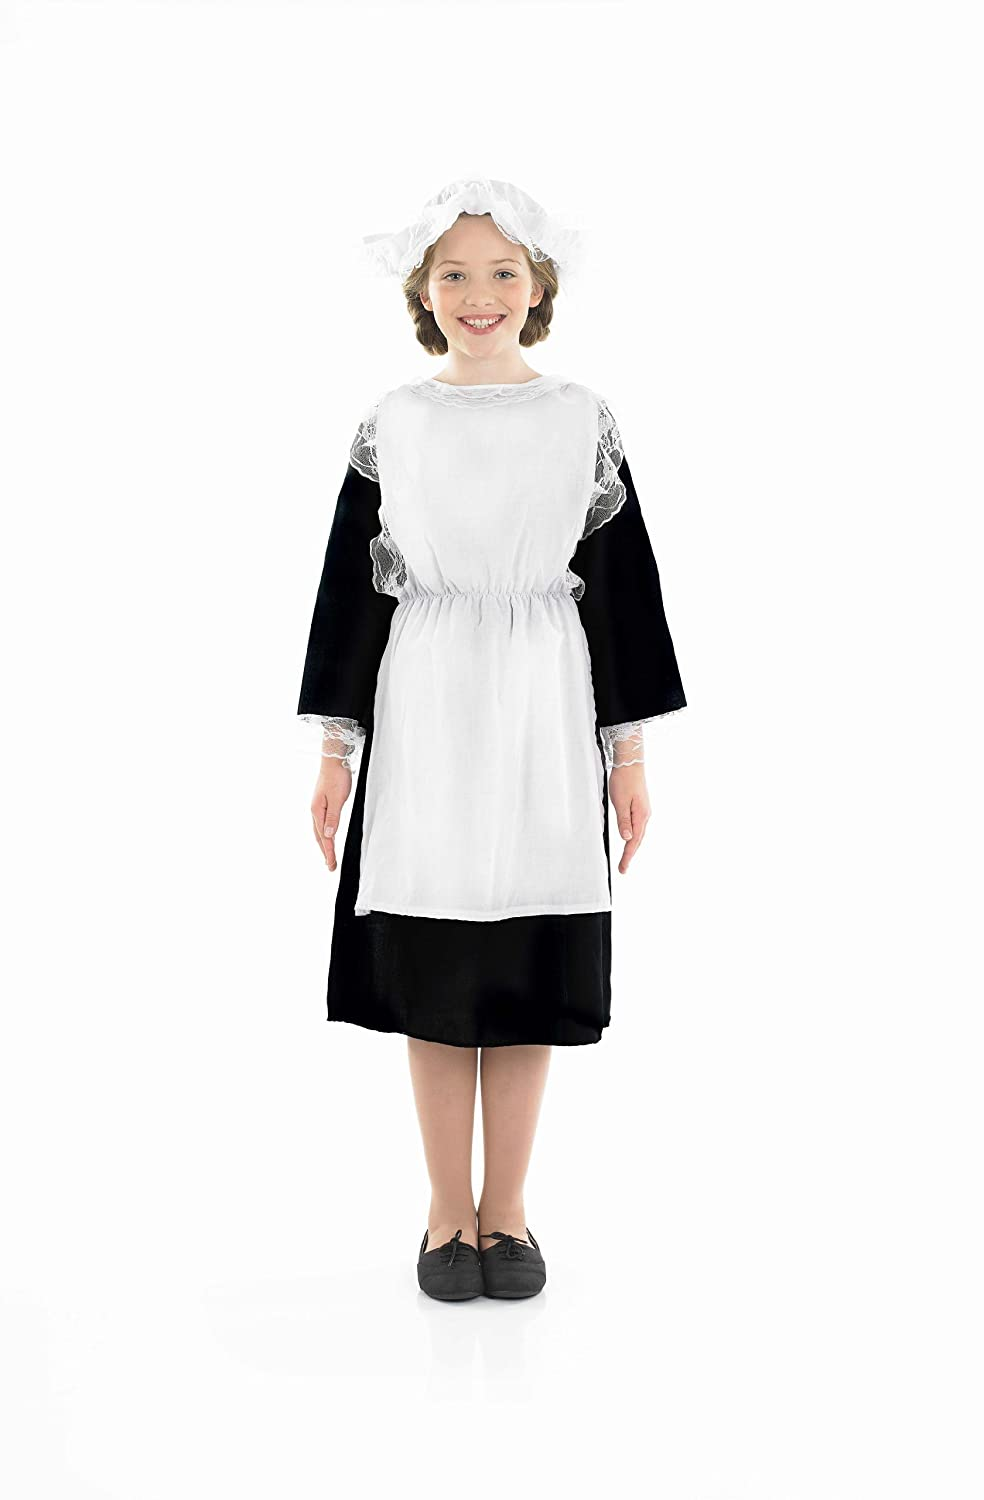 Fancy Dress Kit Girls Costume Book White With Apron /& Mop Cap Victorian Kit